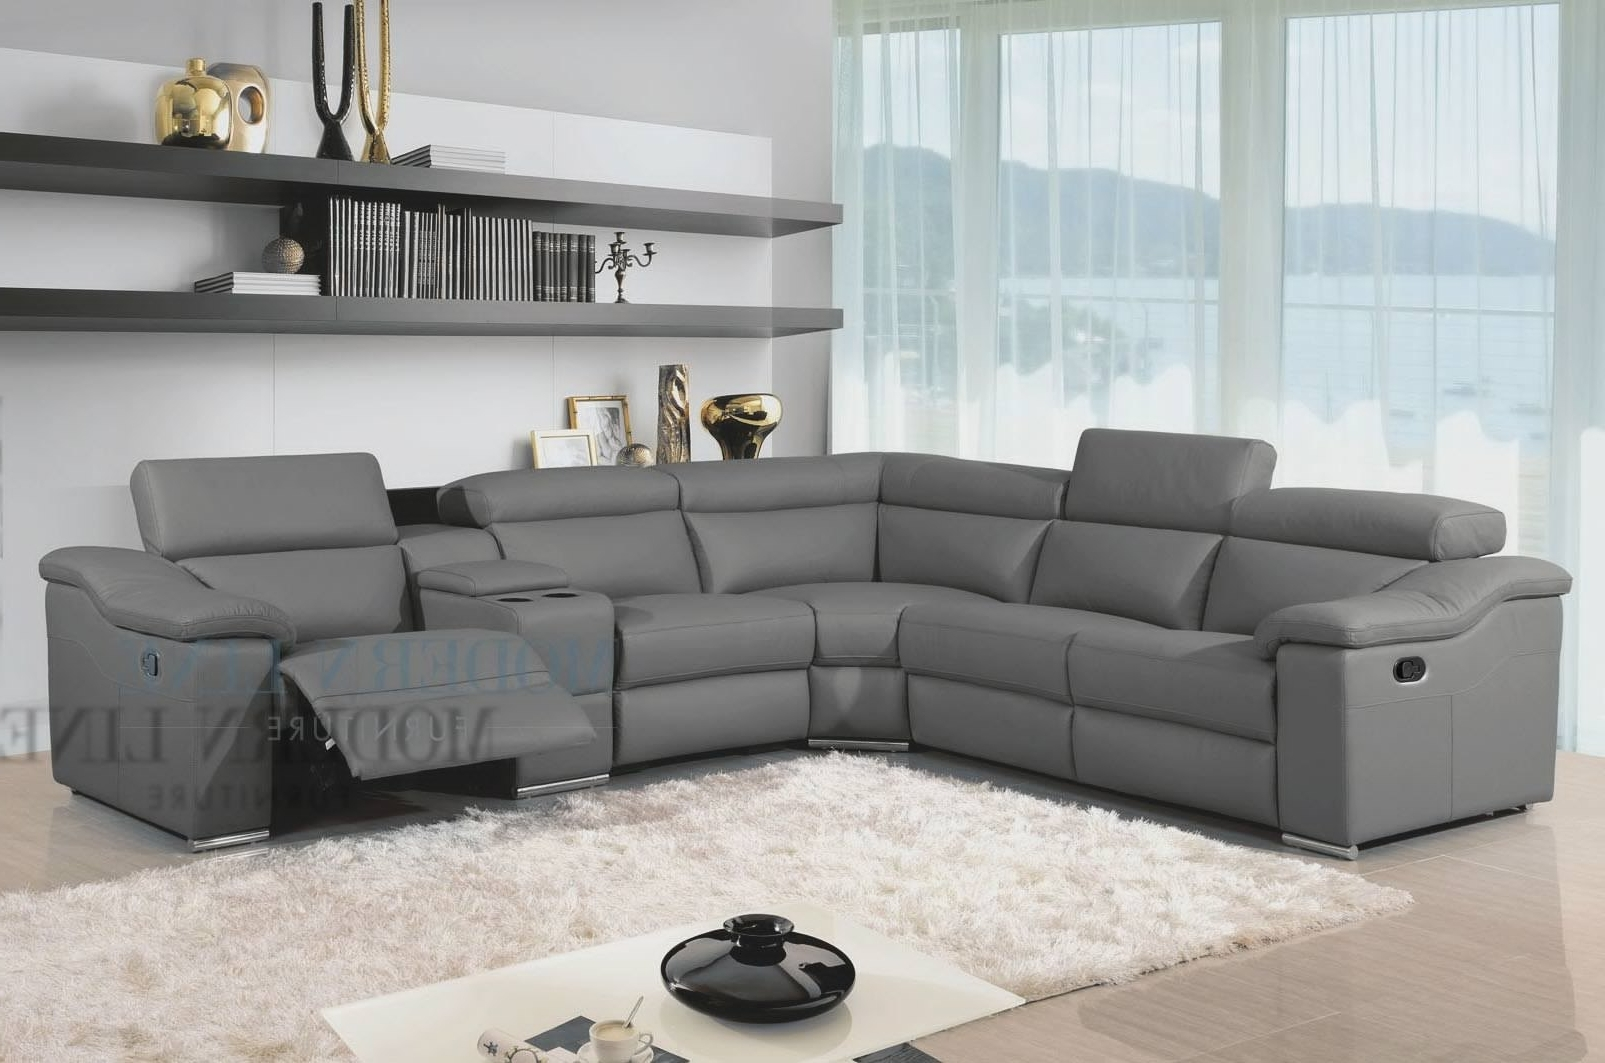 Most Recently Released Houzz Sectional Sofas With Regard To Sectional Sofa Design: Grey Leather Sectional Sofa Chaise (View 16 of 20)